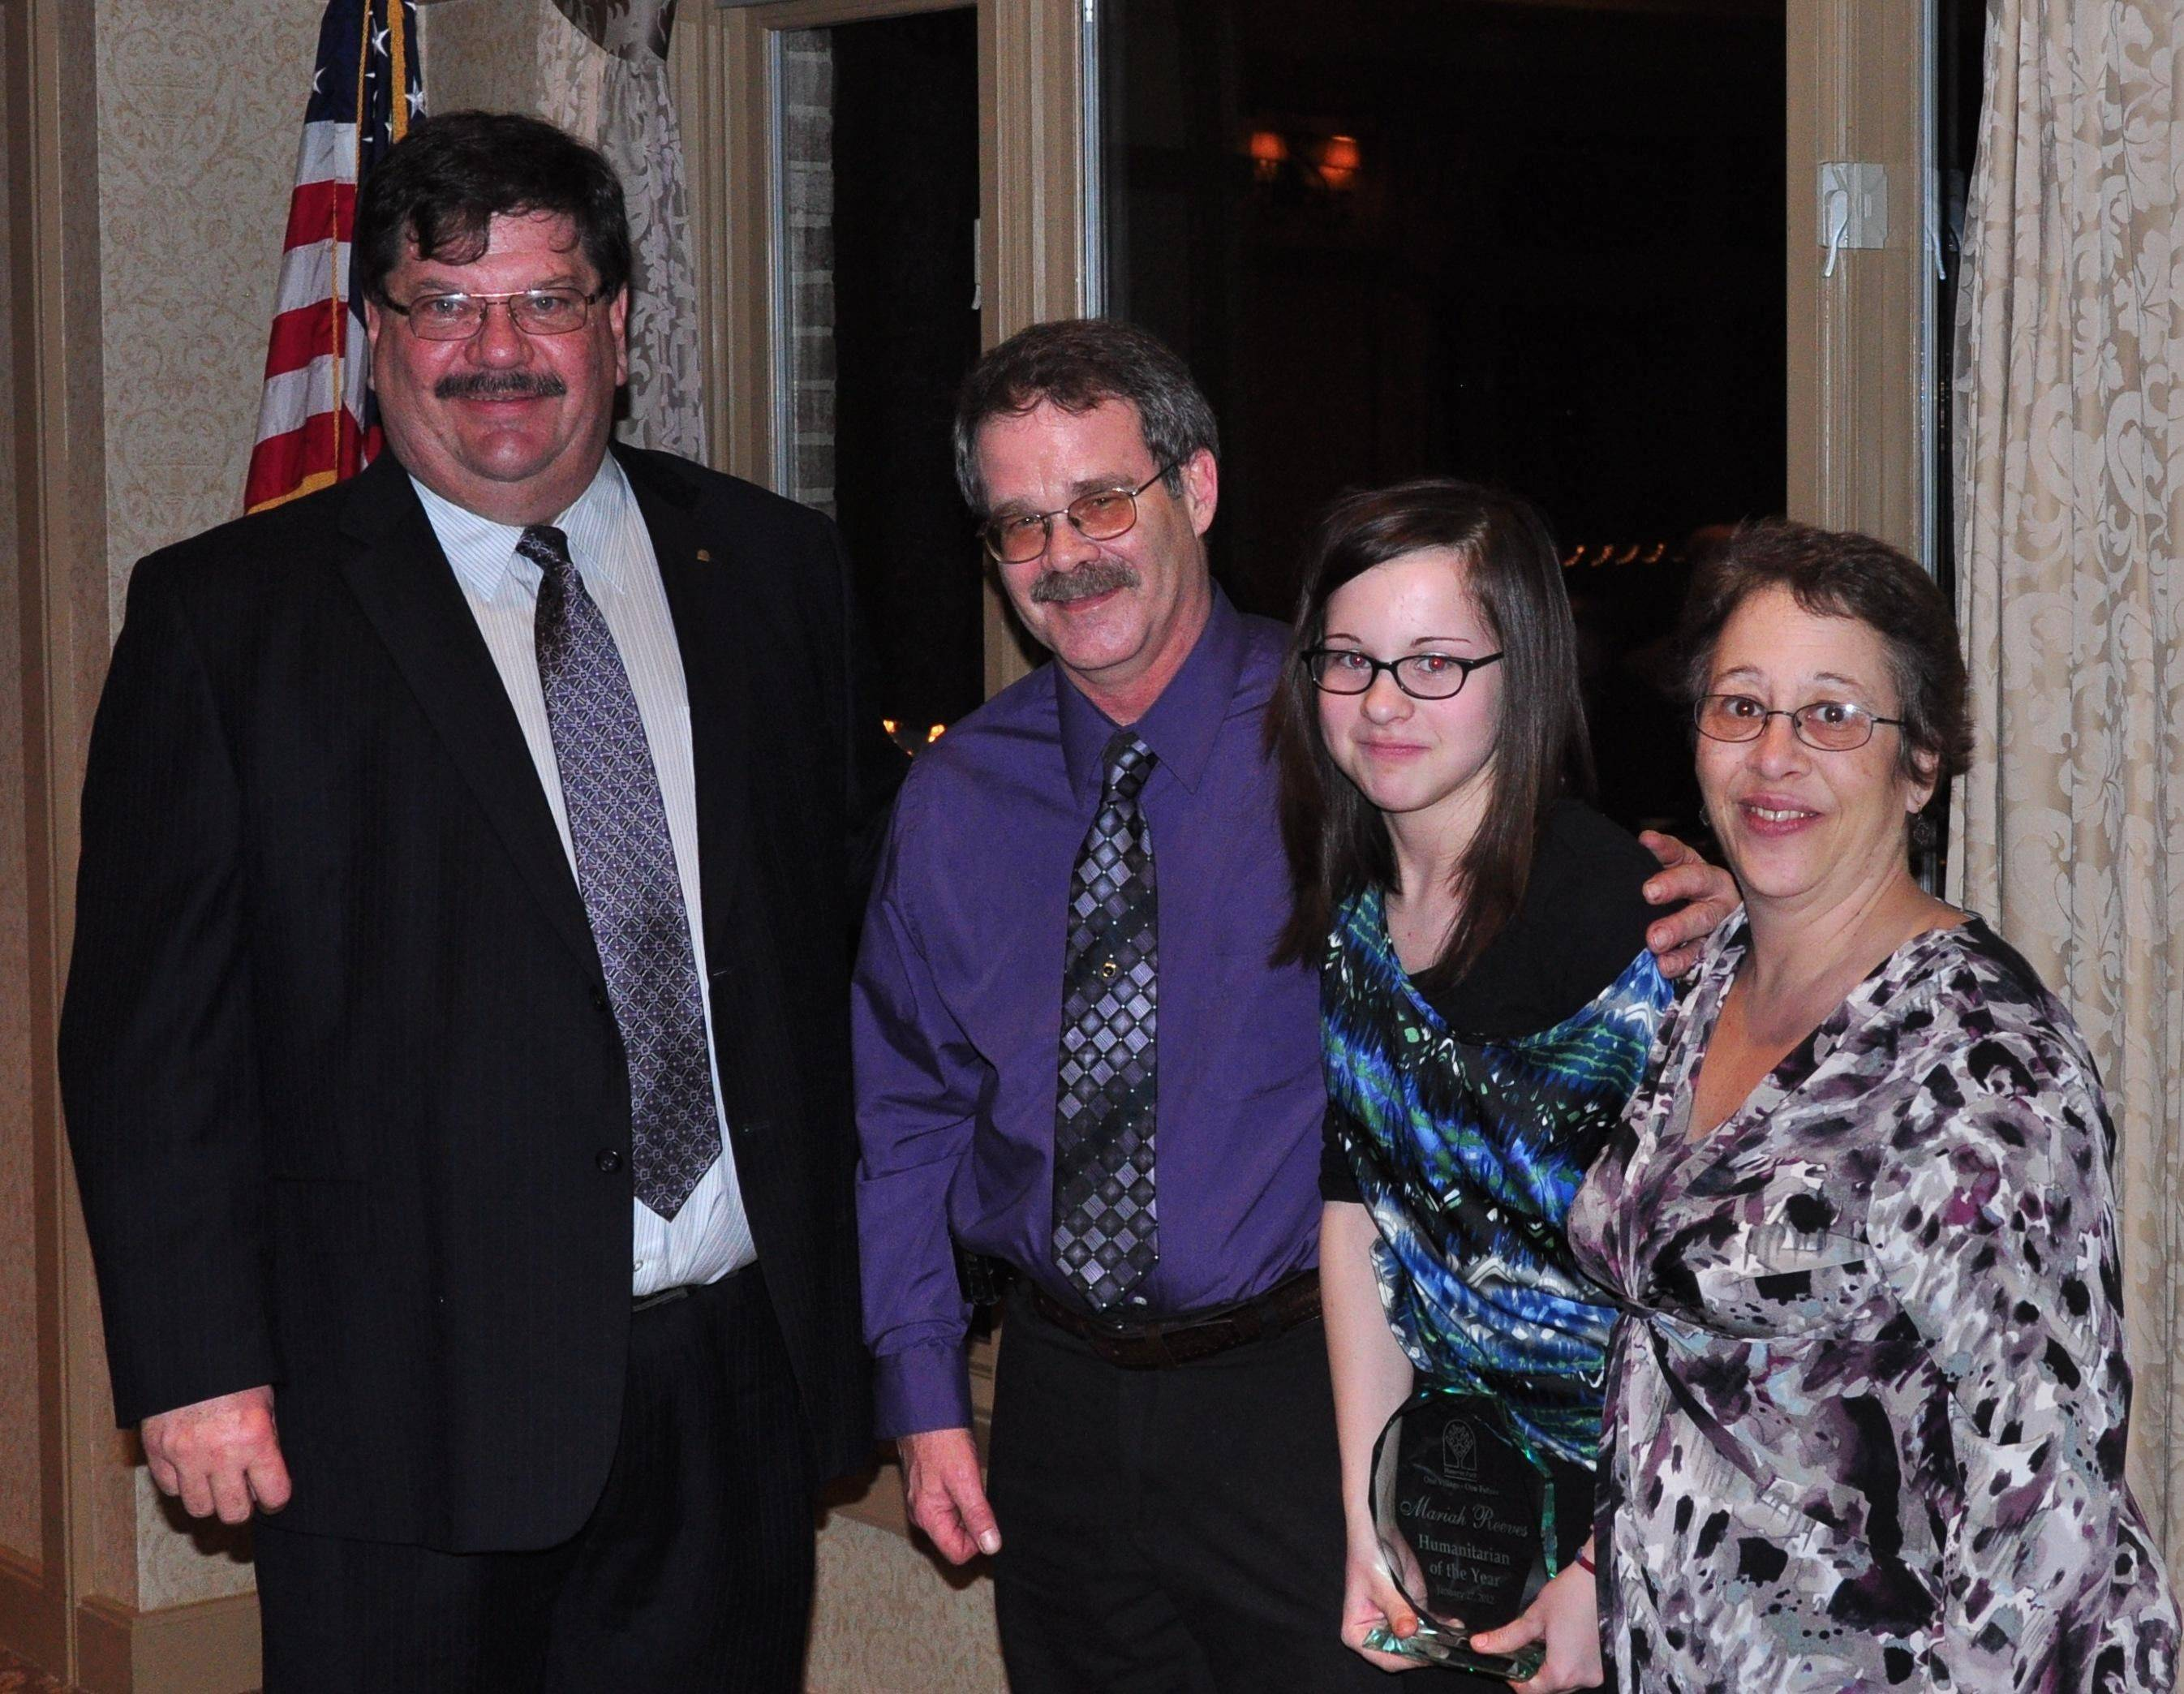 Hanover Park recognizes citizens, businesses at Awards Night